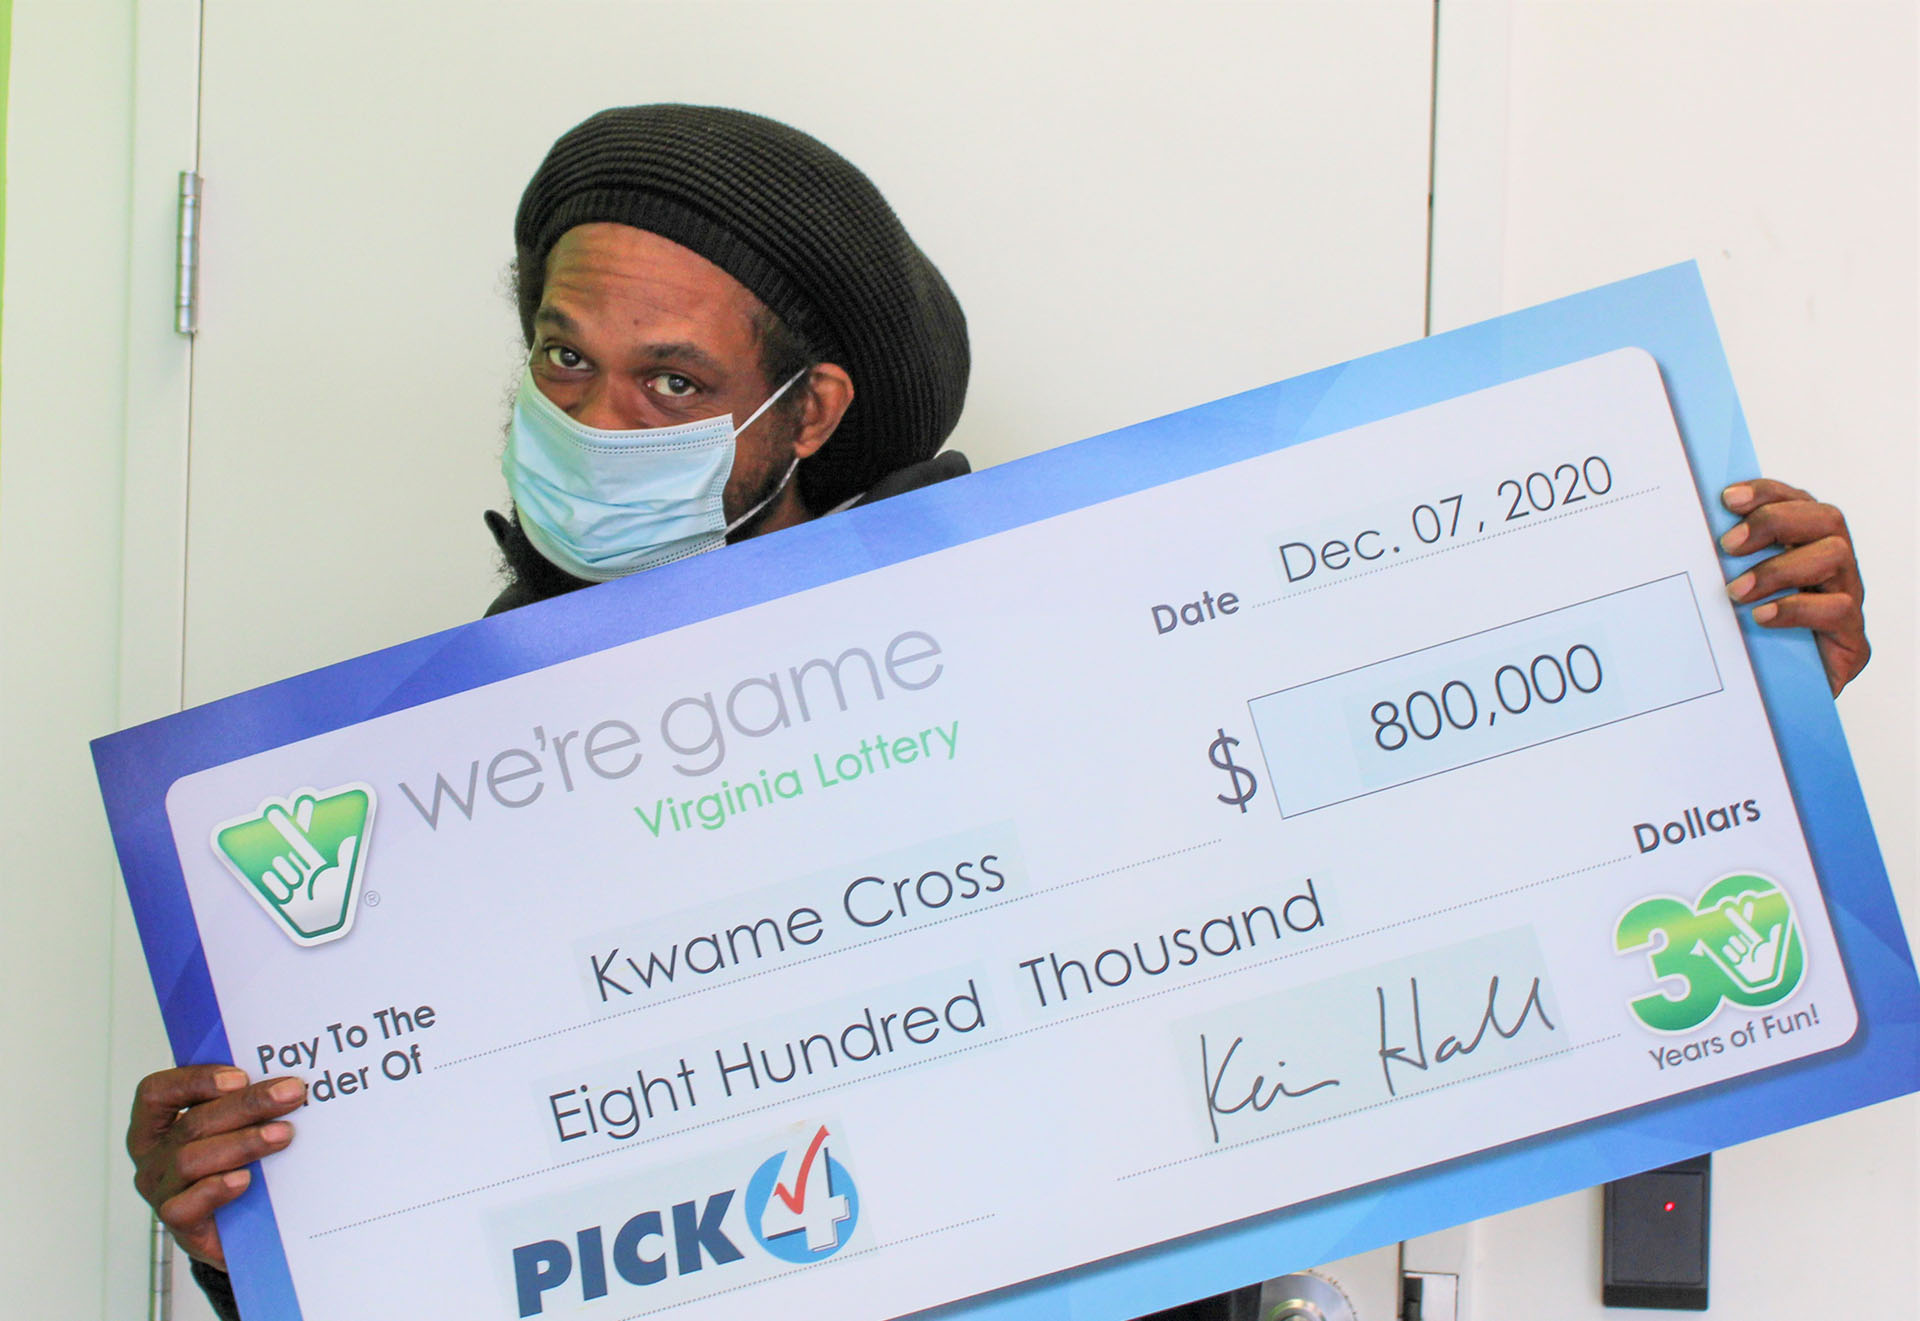 Dumfries resident wins $800,000 from Virginia Lottery